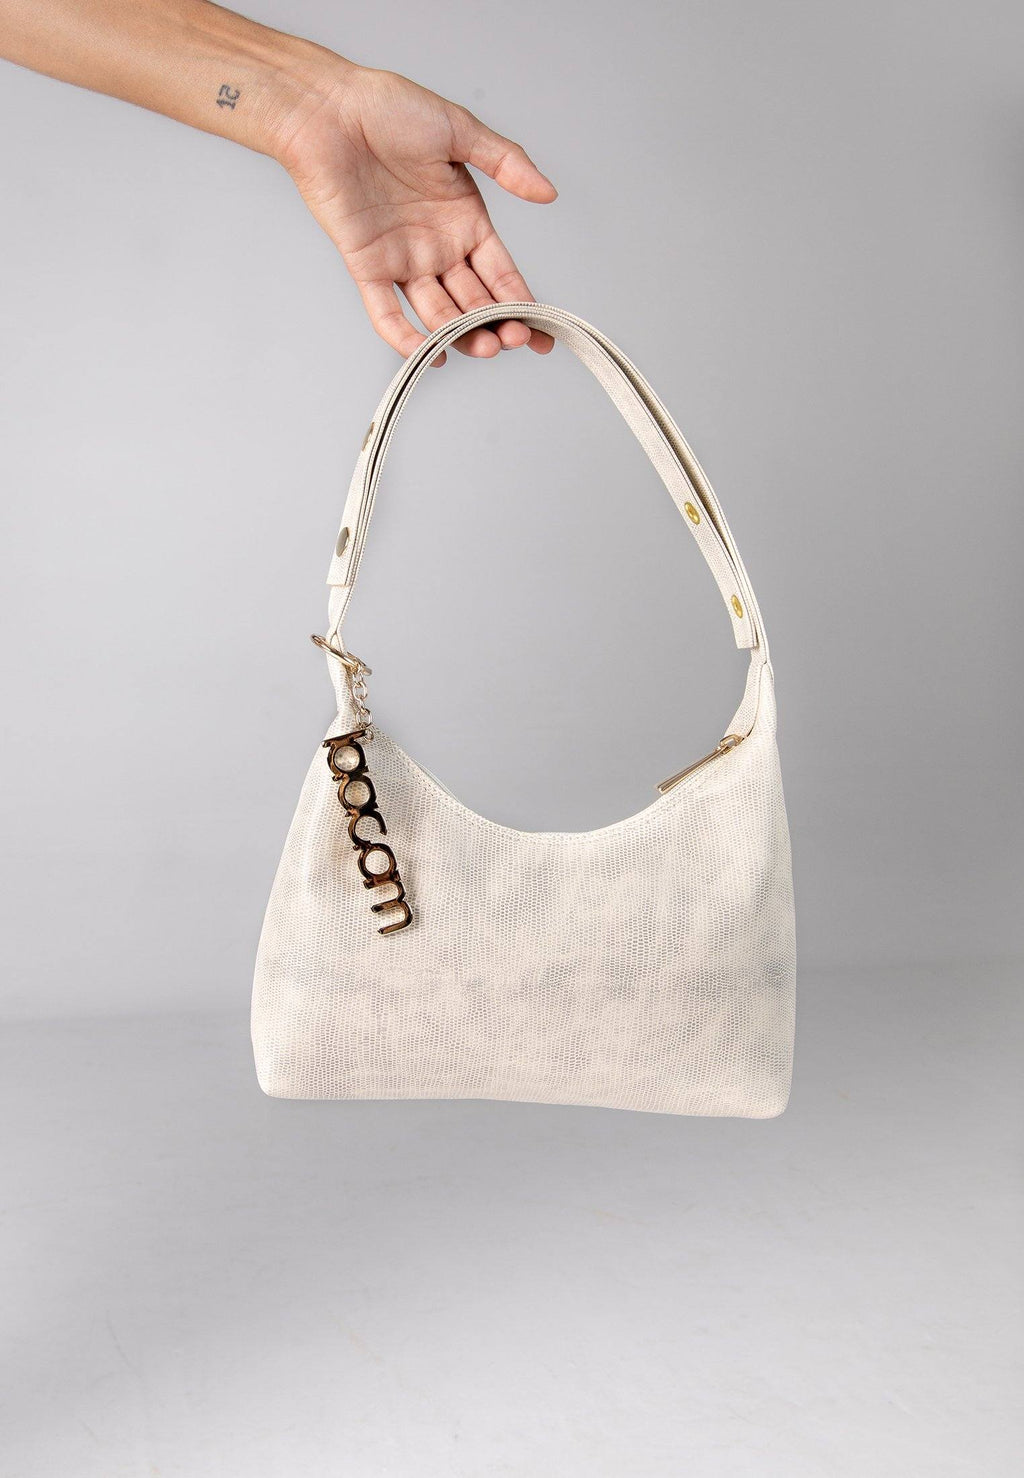 triangle bag créme